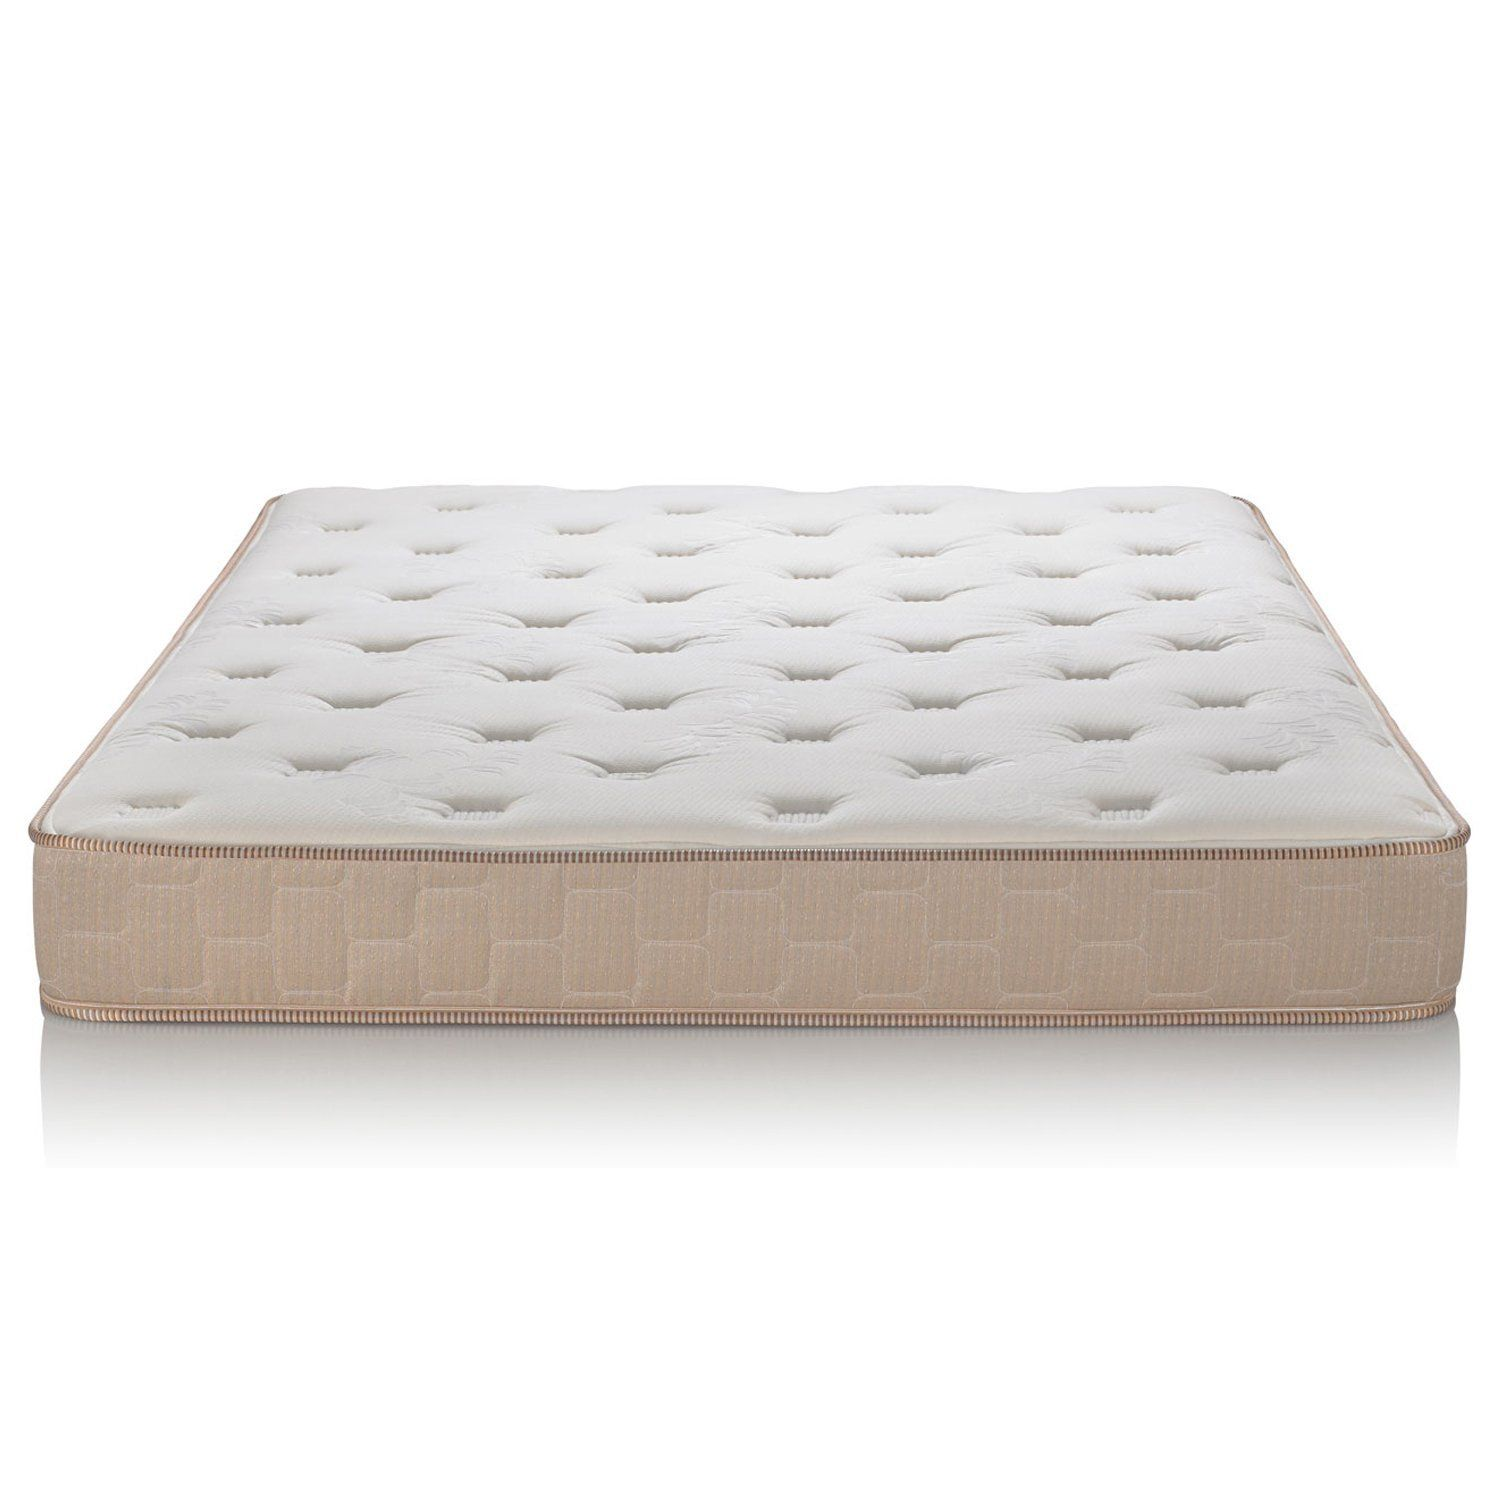 primasleep multi layered soft cloud memory foam mattress quilting